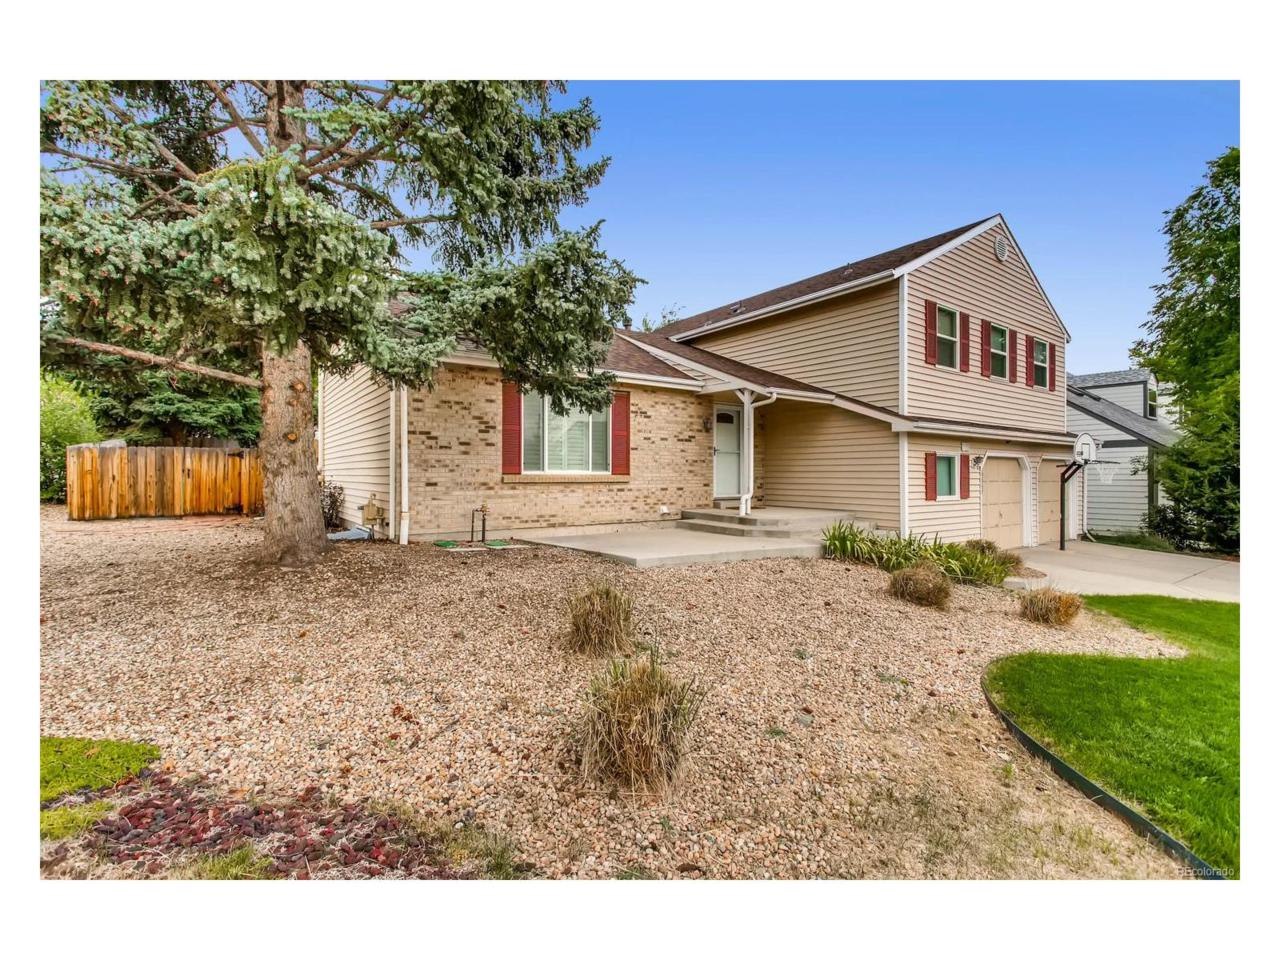 6837 S Hudson Street, Centennial, CO 80122 (MLS #6613672) :: 8z Real Estate